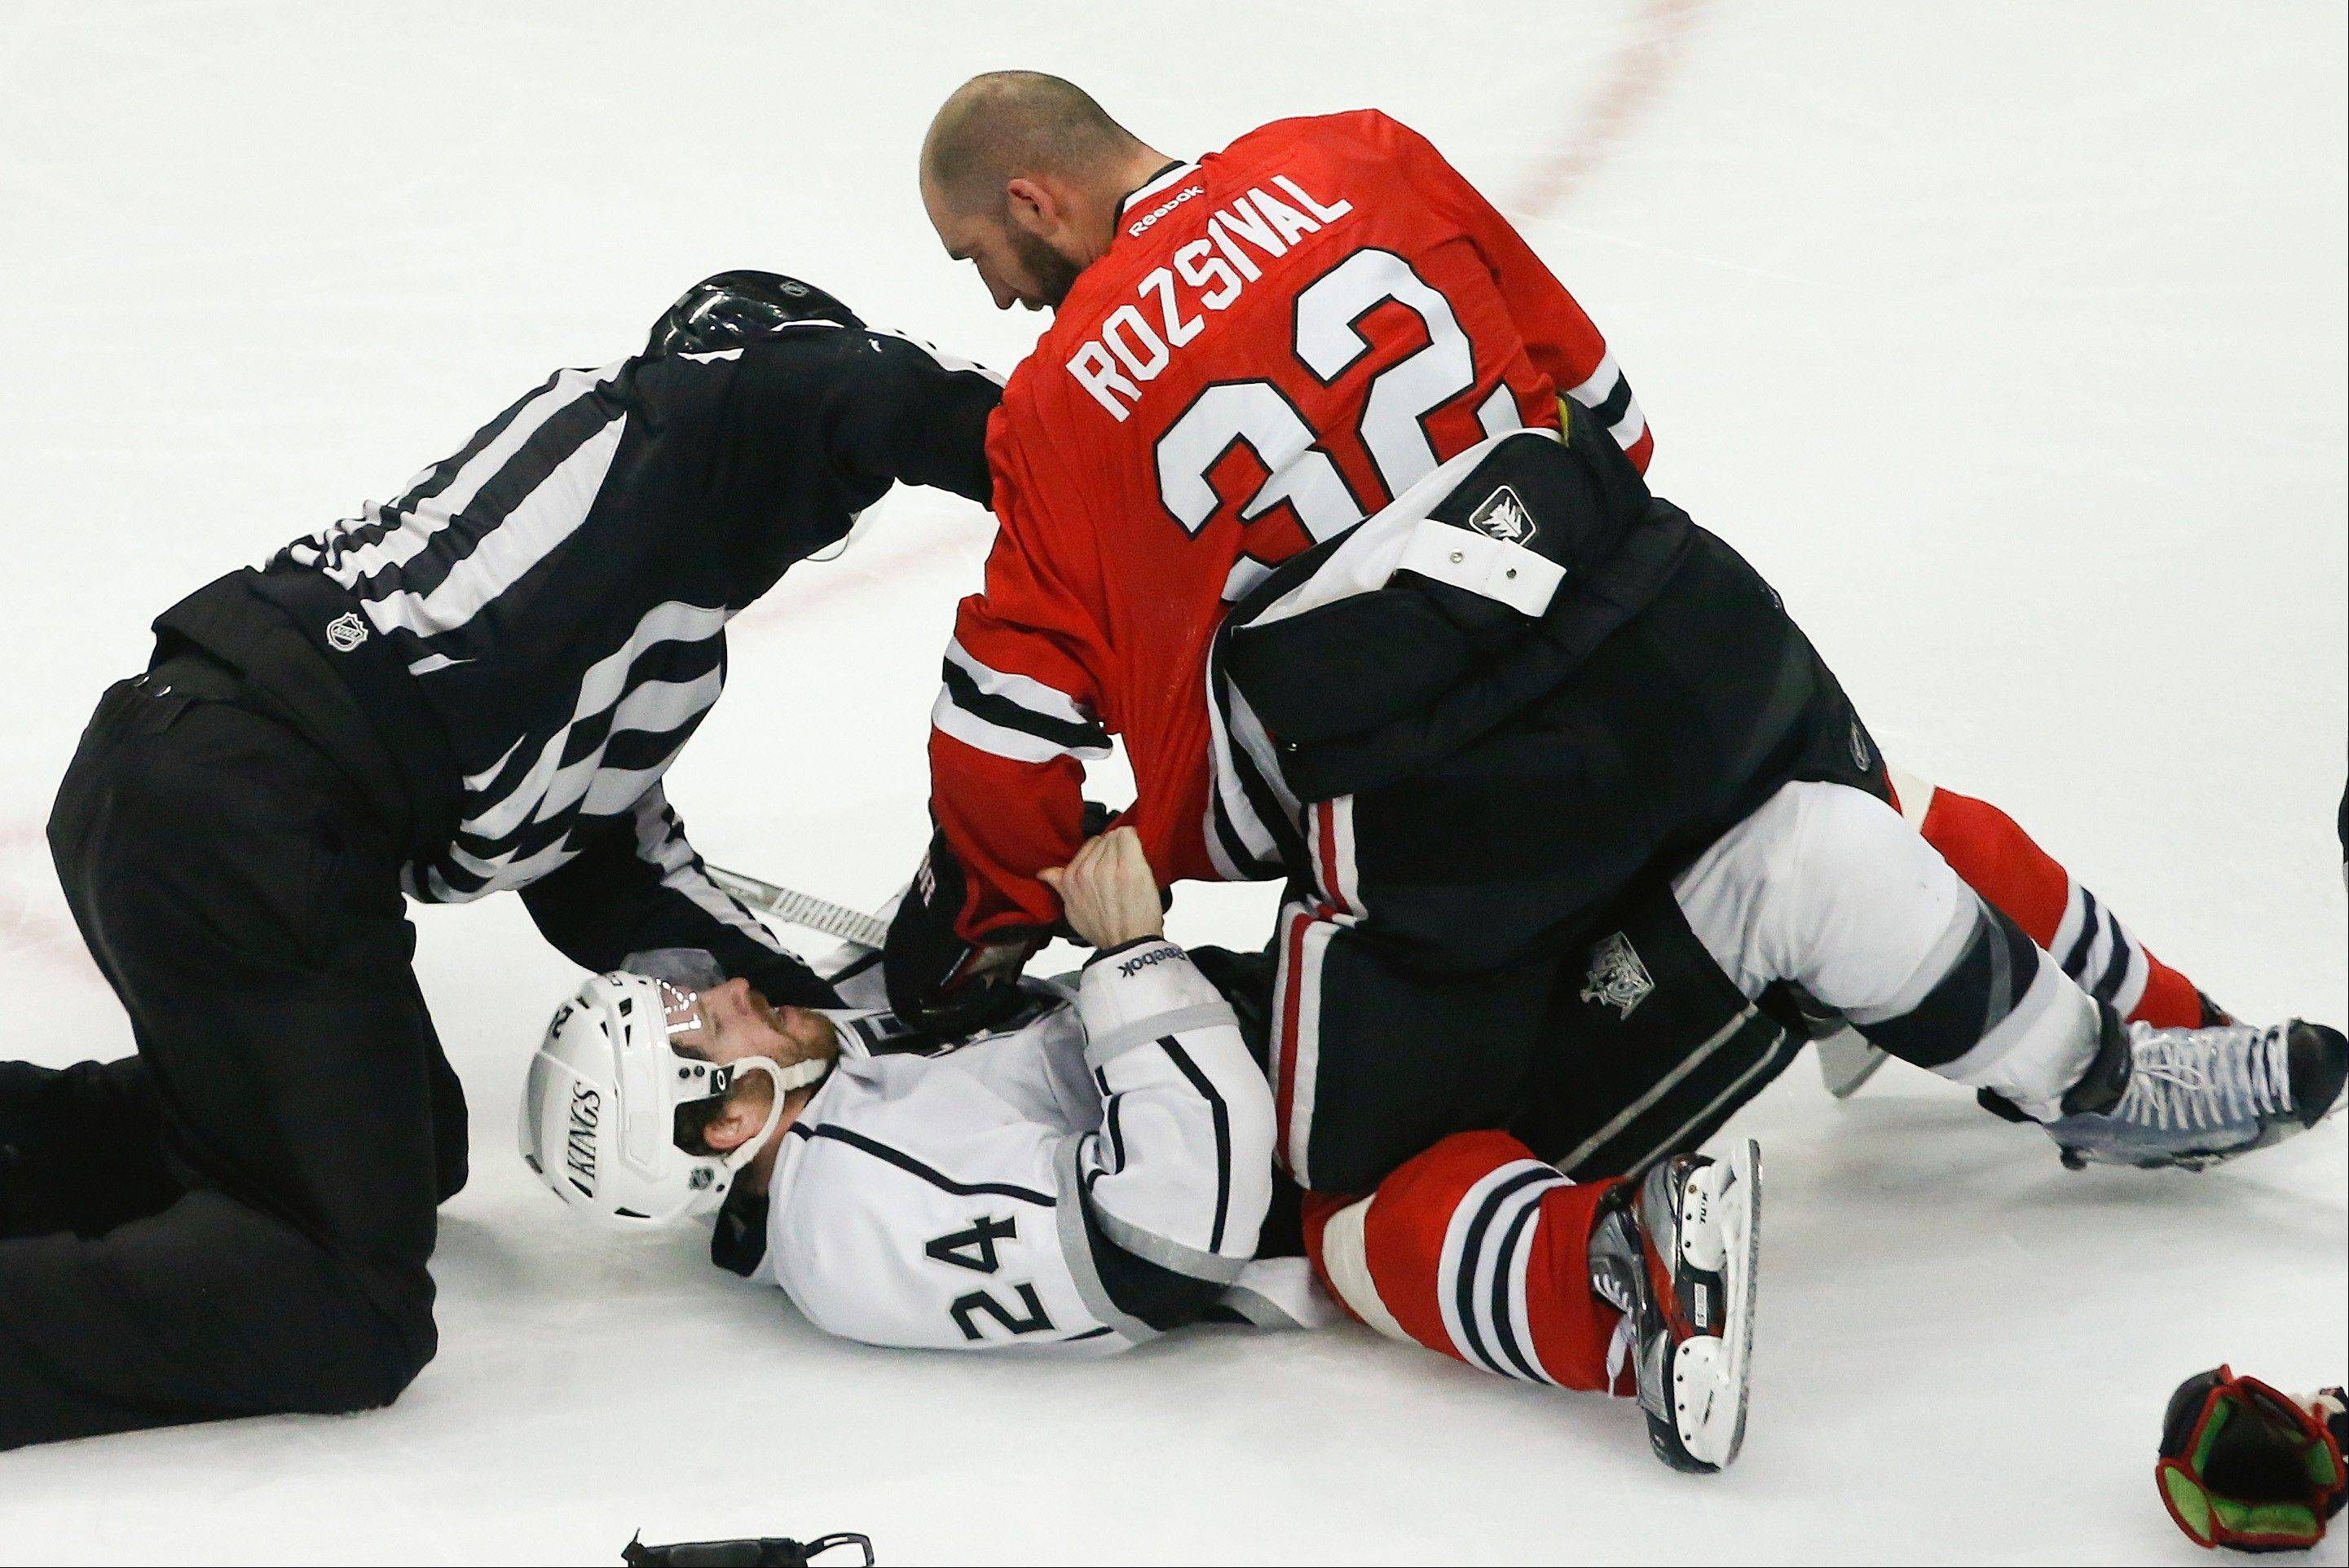 The referee tries to break up a fight between Los Angeles Kings center Colin Fraser (24) and Chicago Blackhawks defenseman Michal Rozsival (32) during the third period in Game 2 of the NHL hockey Stanley Cup Western Conference finals Sunday, June 2, 2013 in Chicago. Chicago won 4-2.